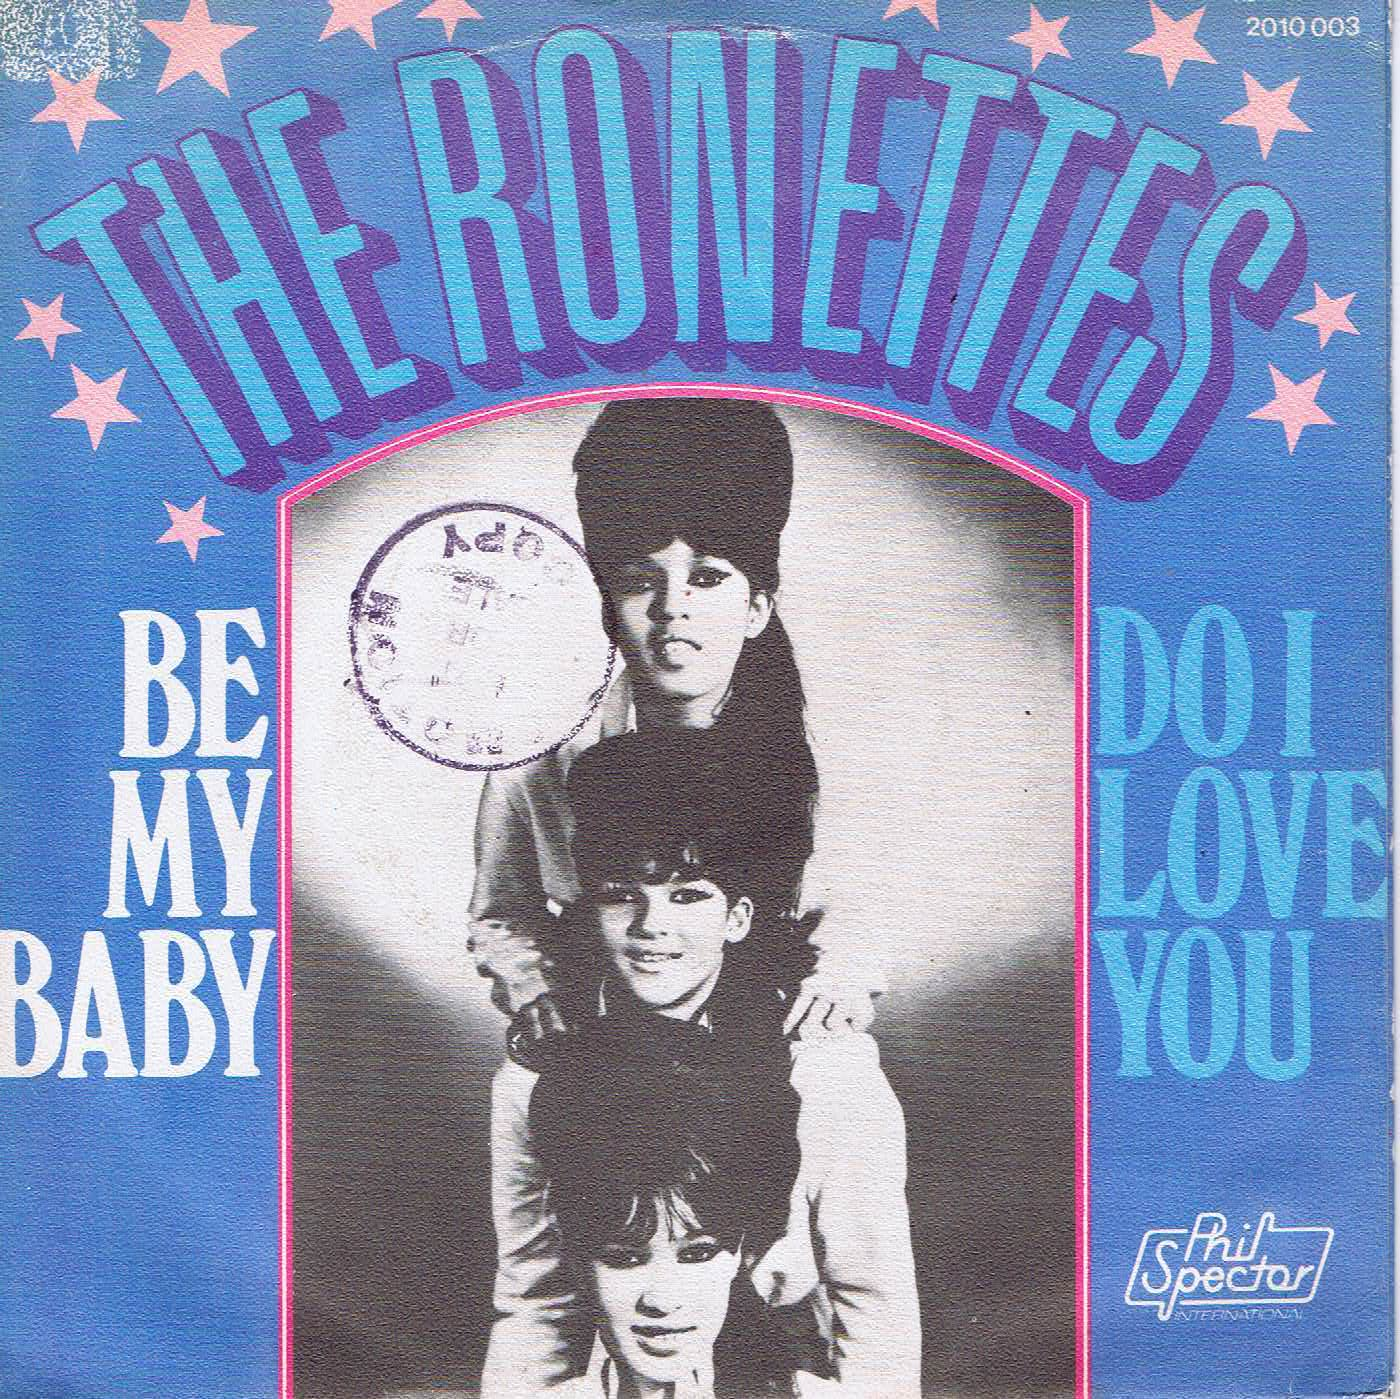 Ronettes, The - Do I Love You? / When I Saw You